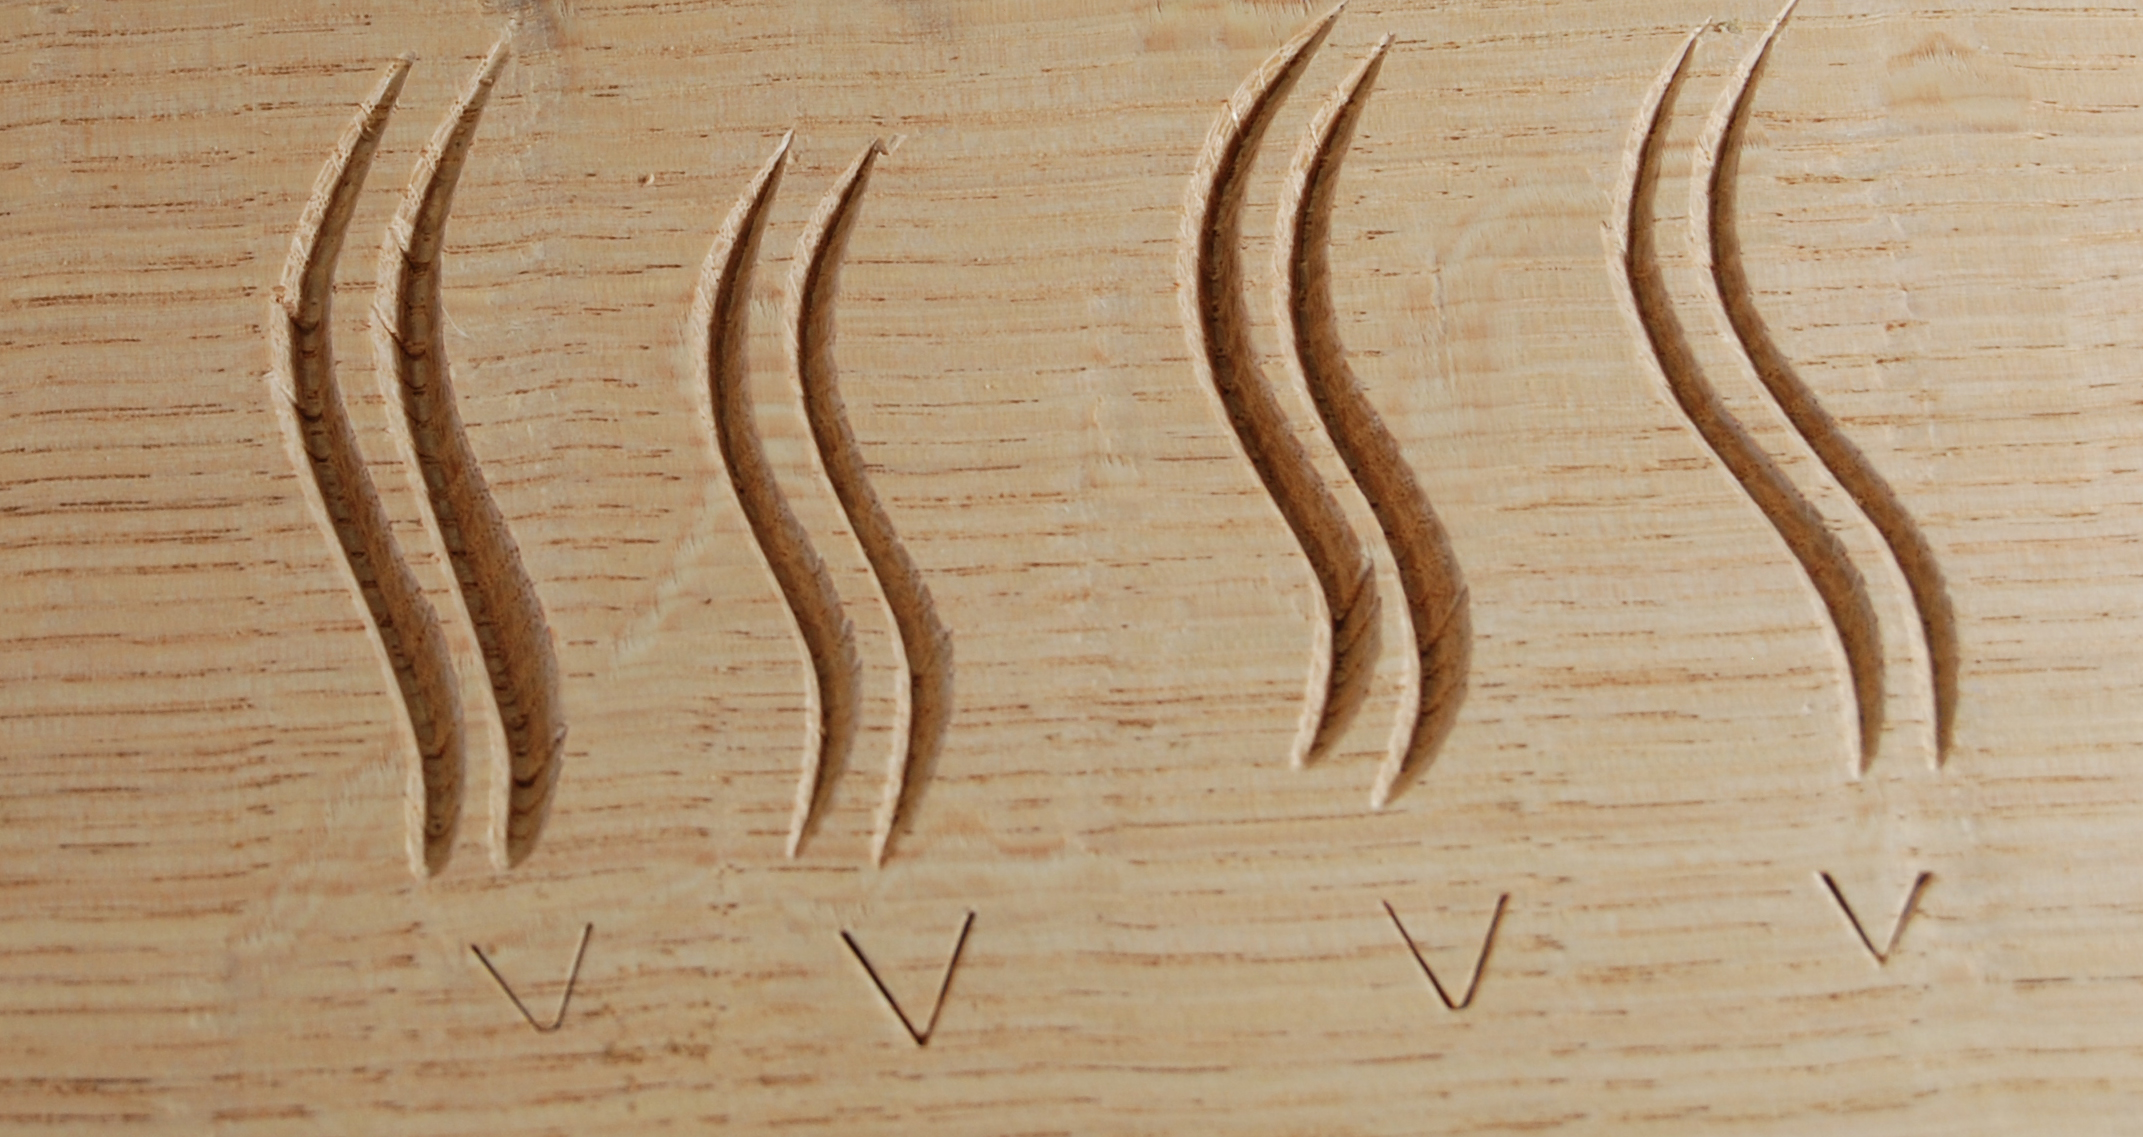 carving gouges | Peter Follansbee, joiner's notes